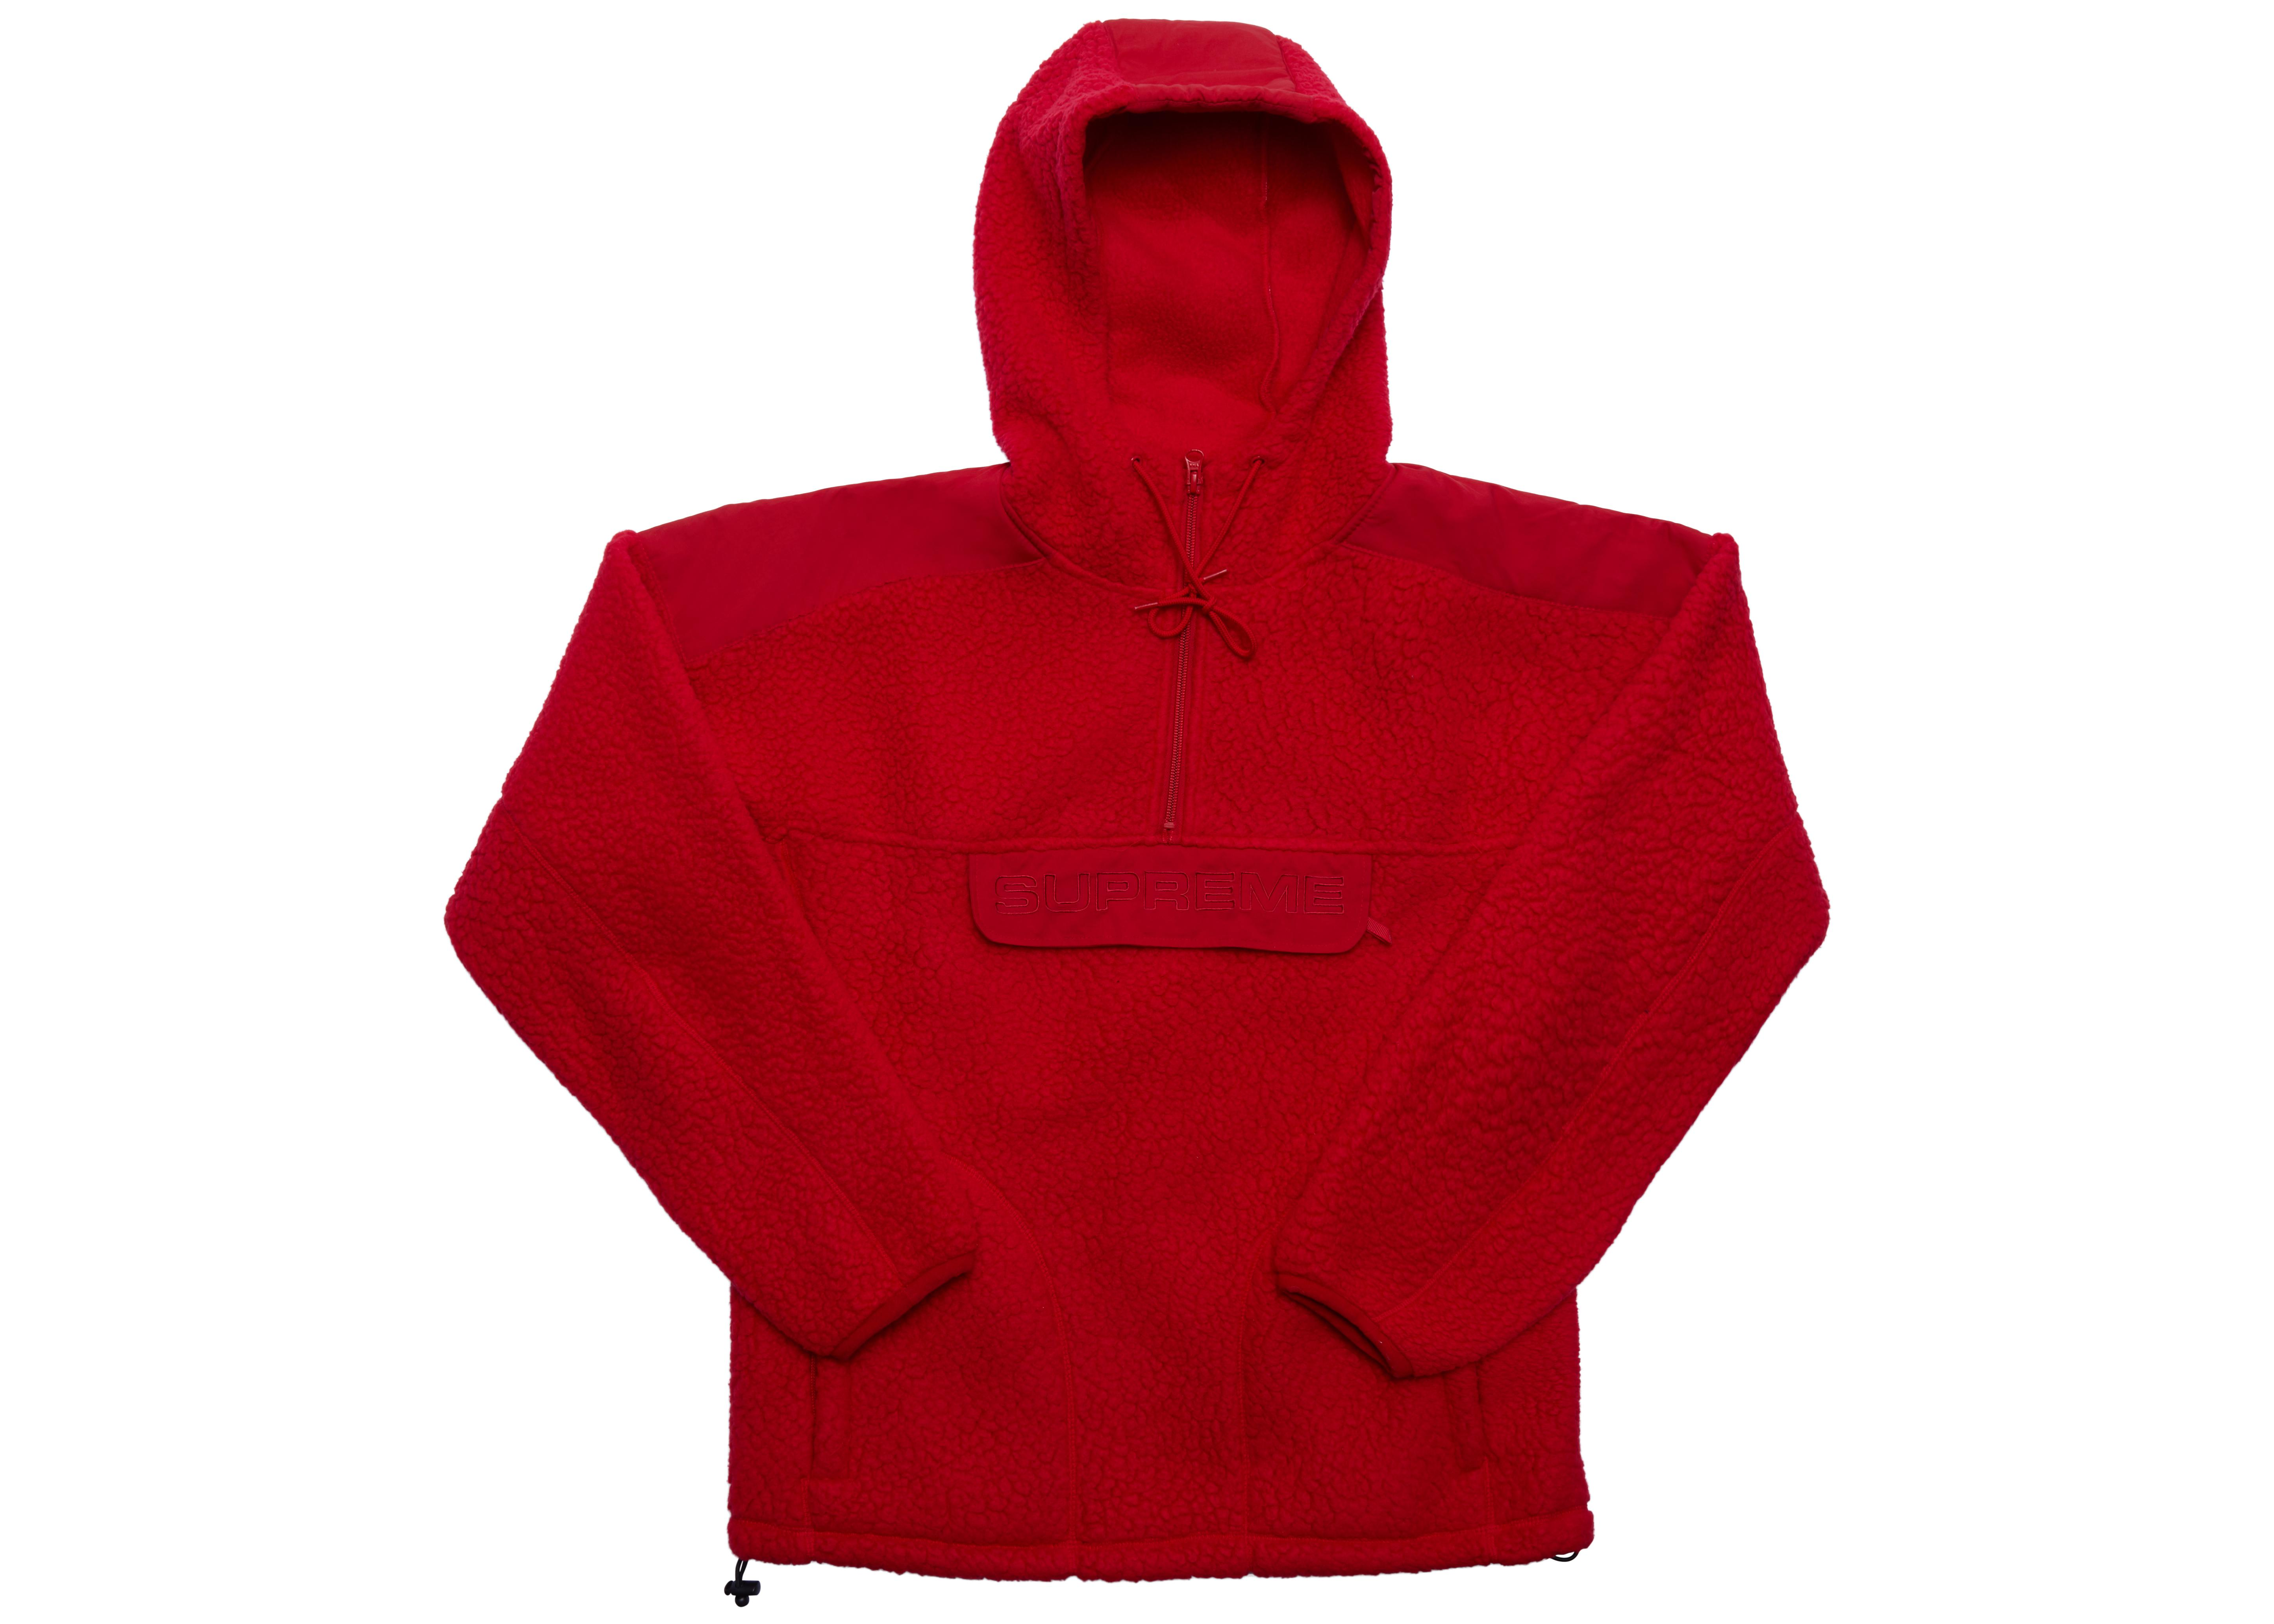 56f5ad54 Tap to visit site. Supreme - Polartec Hooded Half Zip Pullover Red for Men  - Lyst